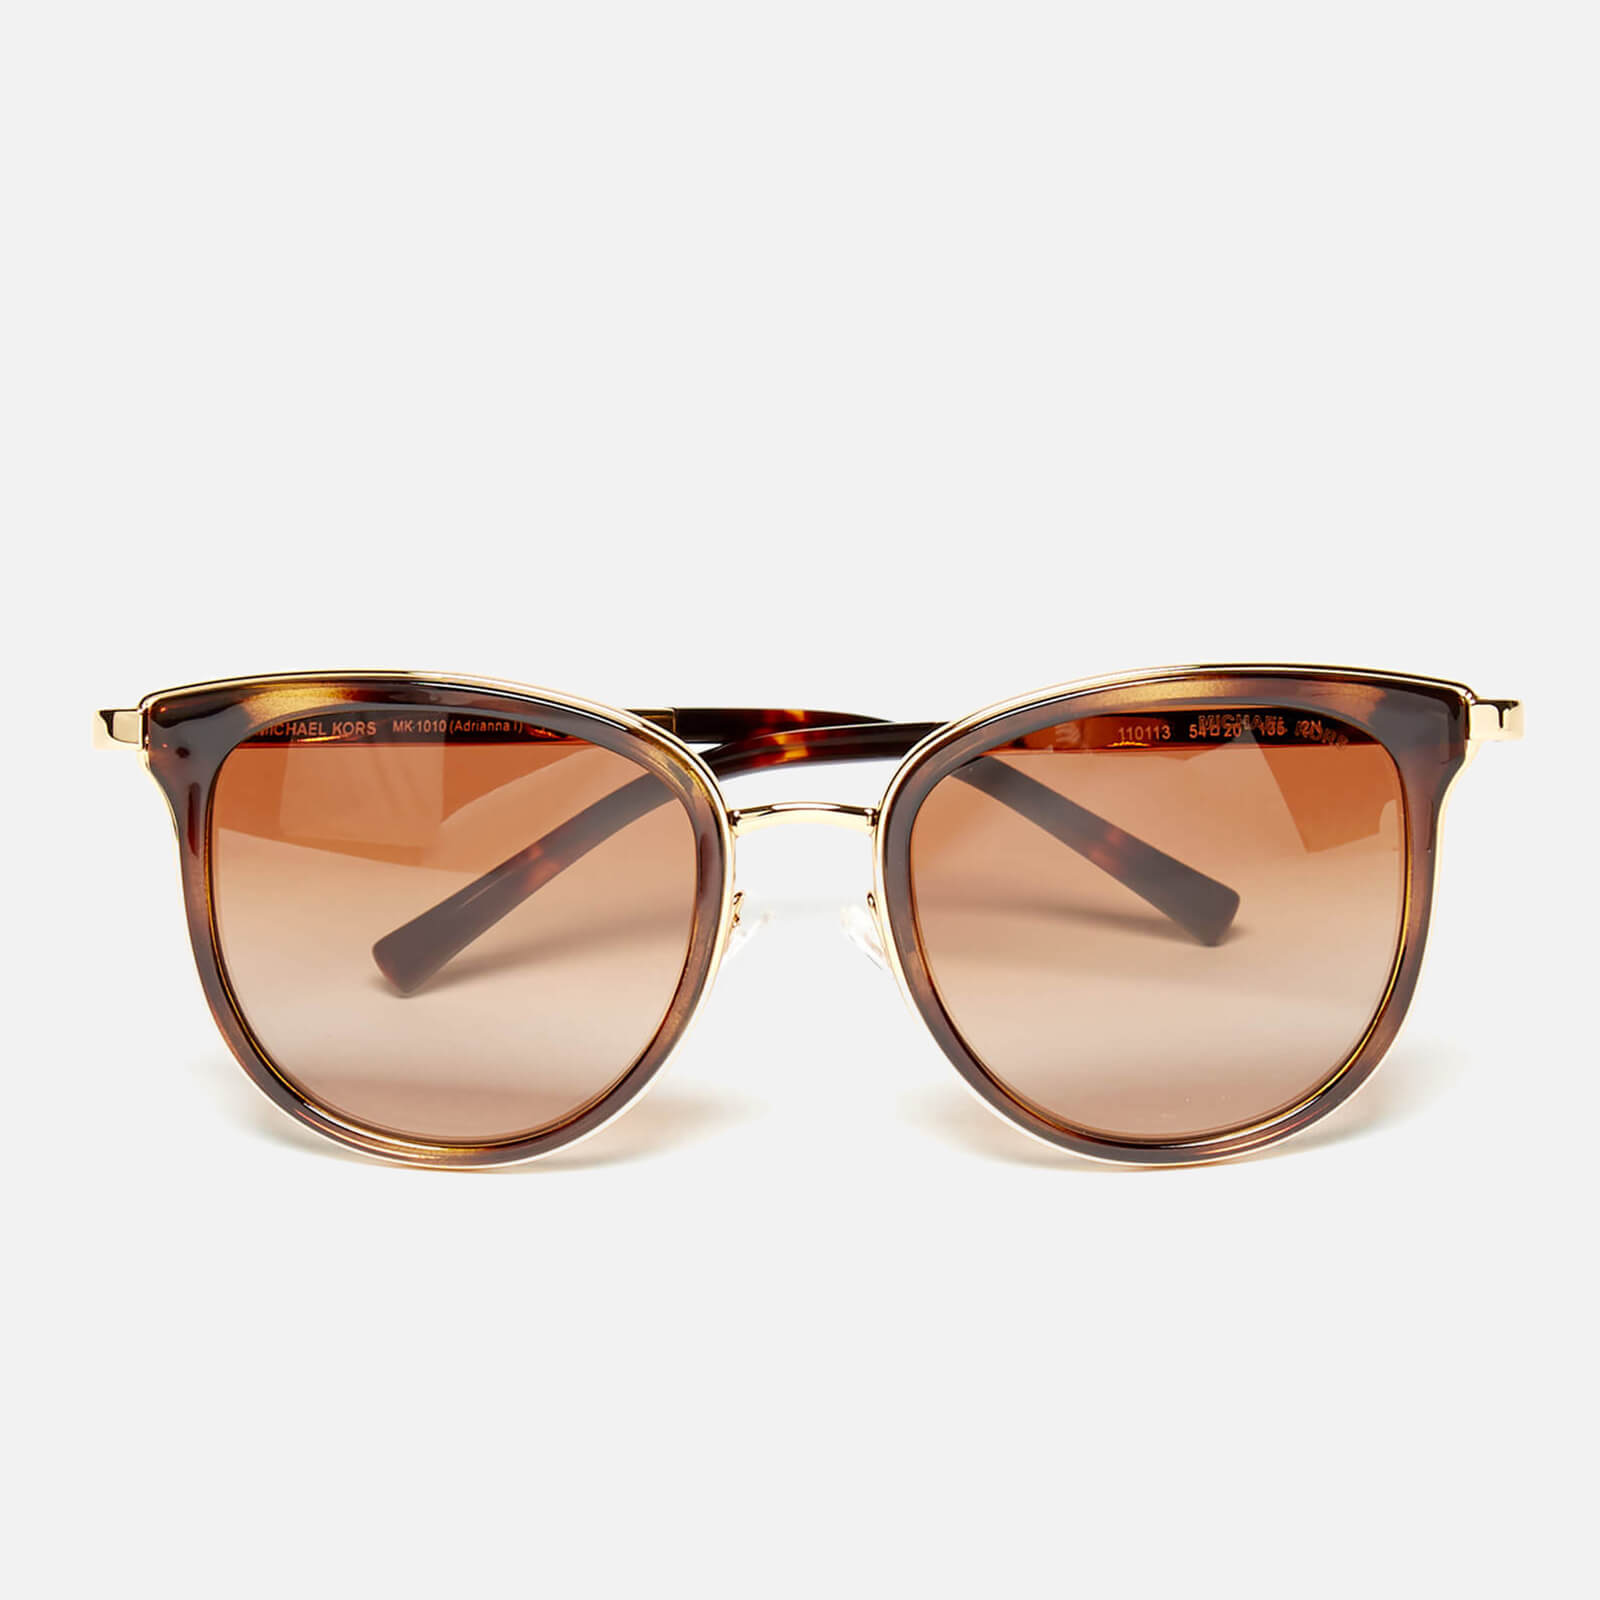 e7d041f5134eb MICHAEL MICHAEL KORS Women s Adrianna I Sunglasses - Dark Tortoise Gold -  Free UK Delivery over £50